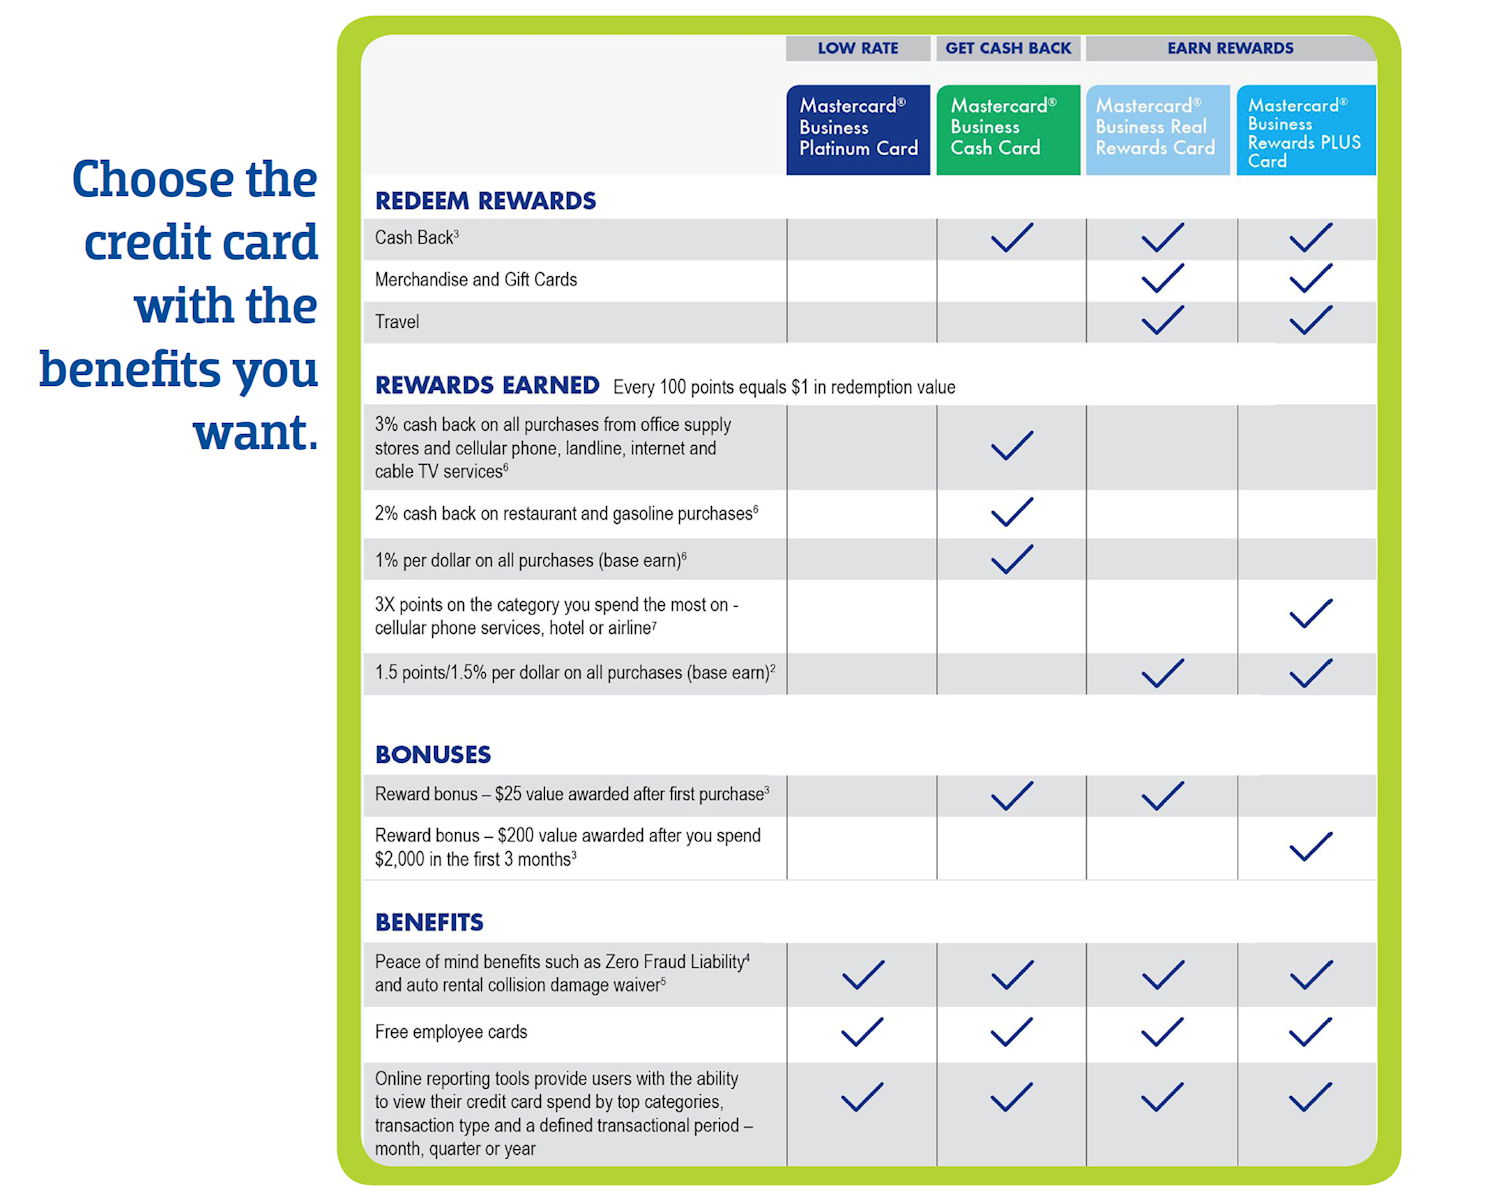 Choose the credit card with the benefits you want | business credit cards